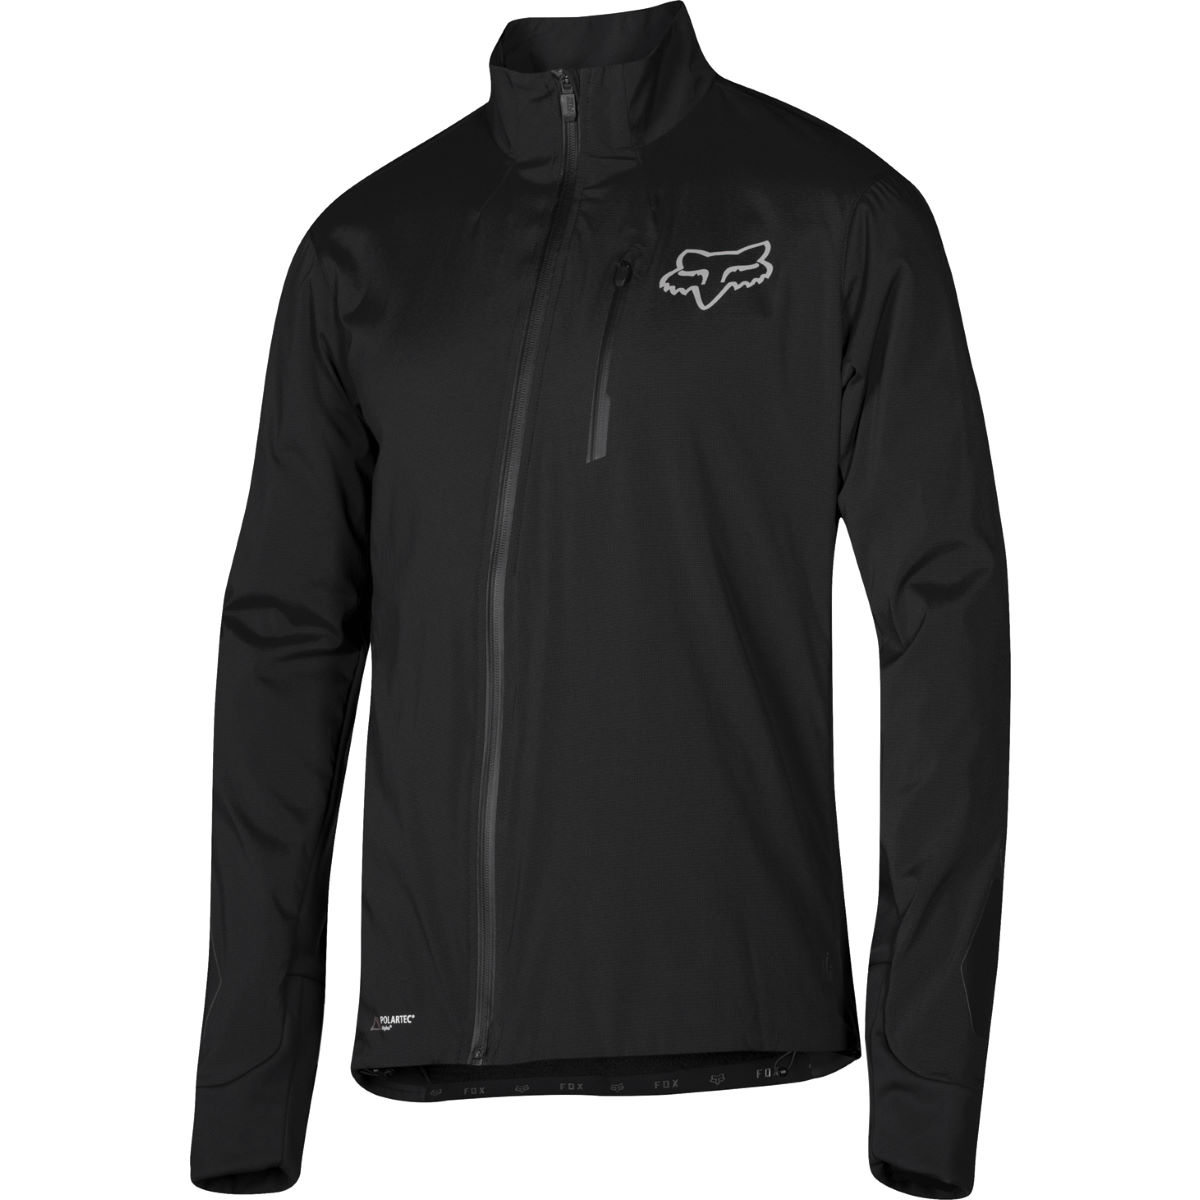 Image of Fox Racing Attack Pro Fire Jacket Jackets